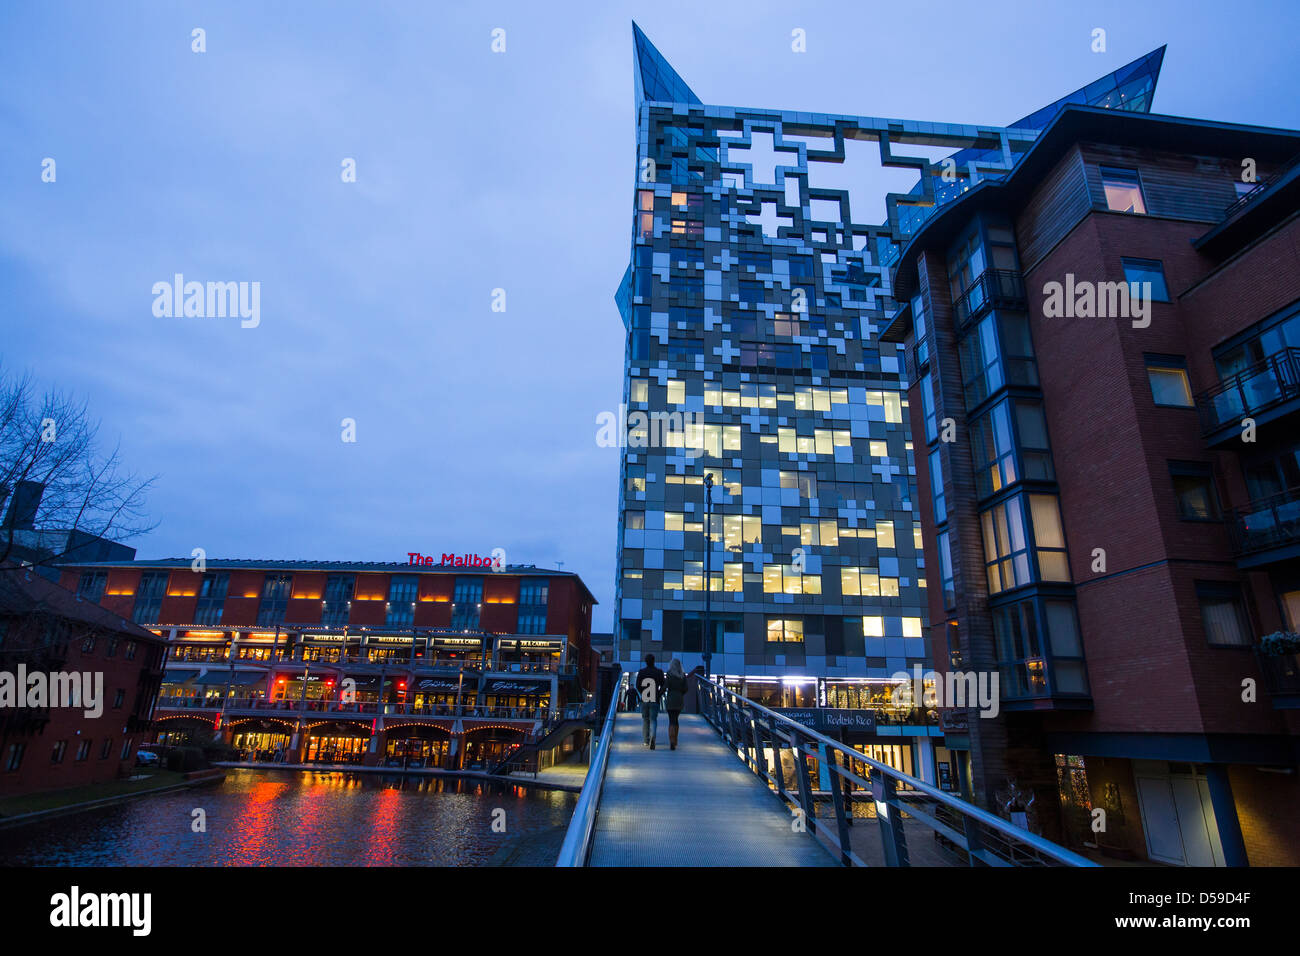 The Mailbox and The Cube in Birmingham city centre, UK - Stock Image